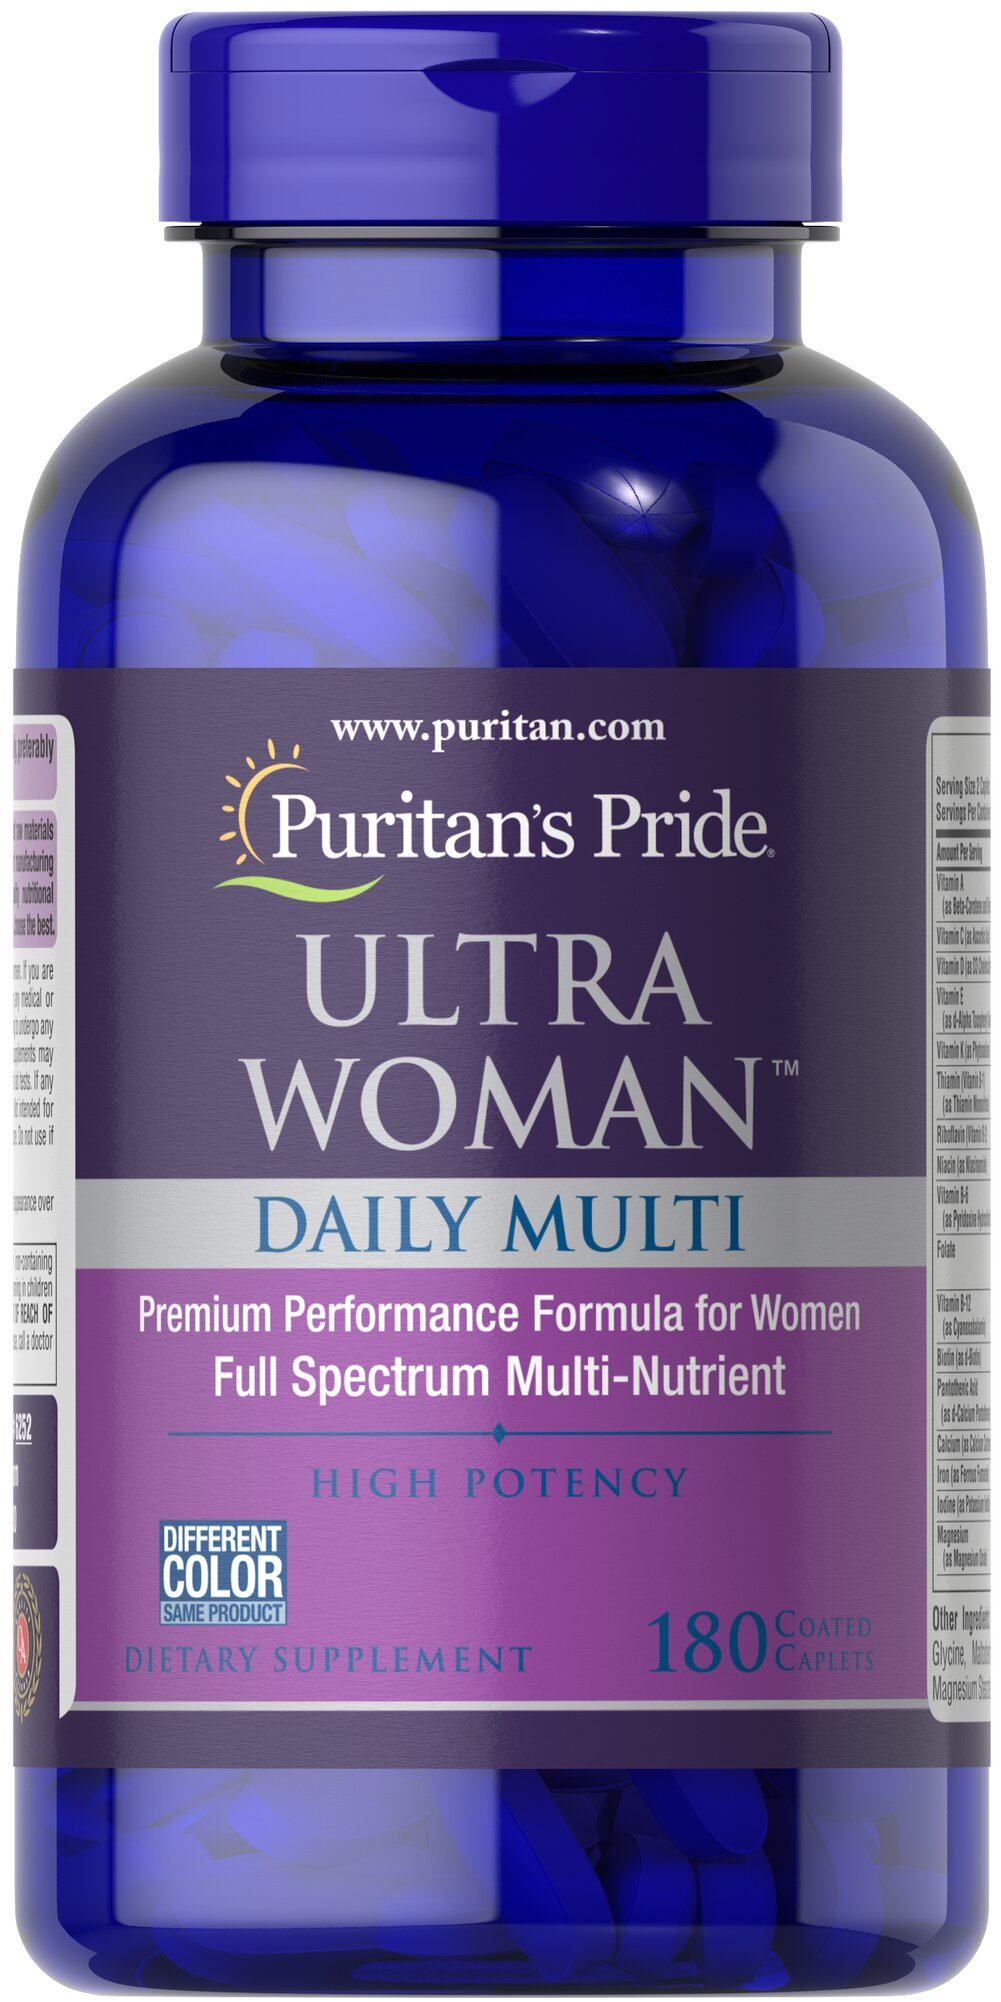 Ultra Women™ Daily Multi Timed Release Thumbnail Alternate Bottle View